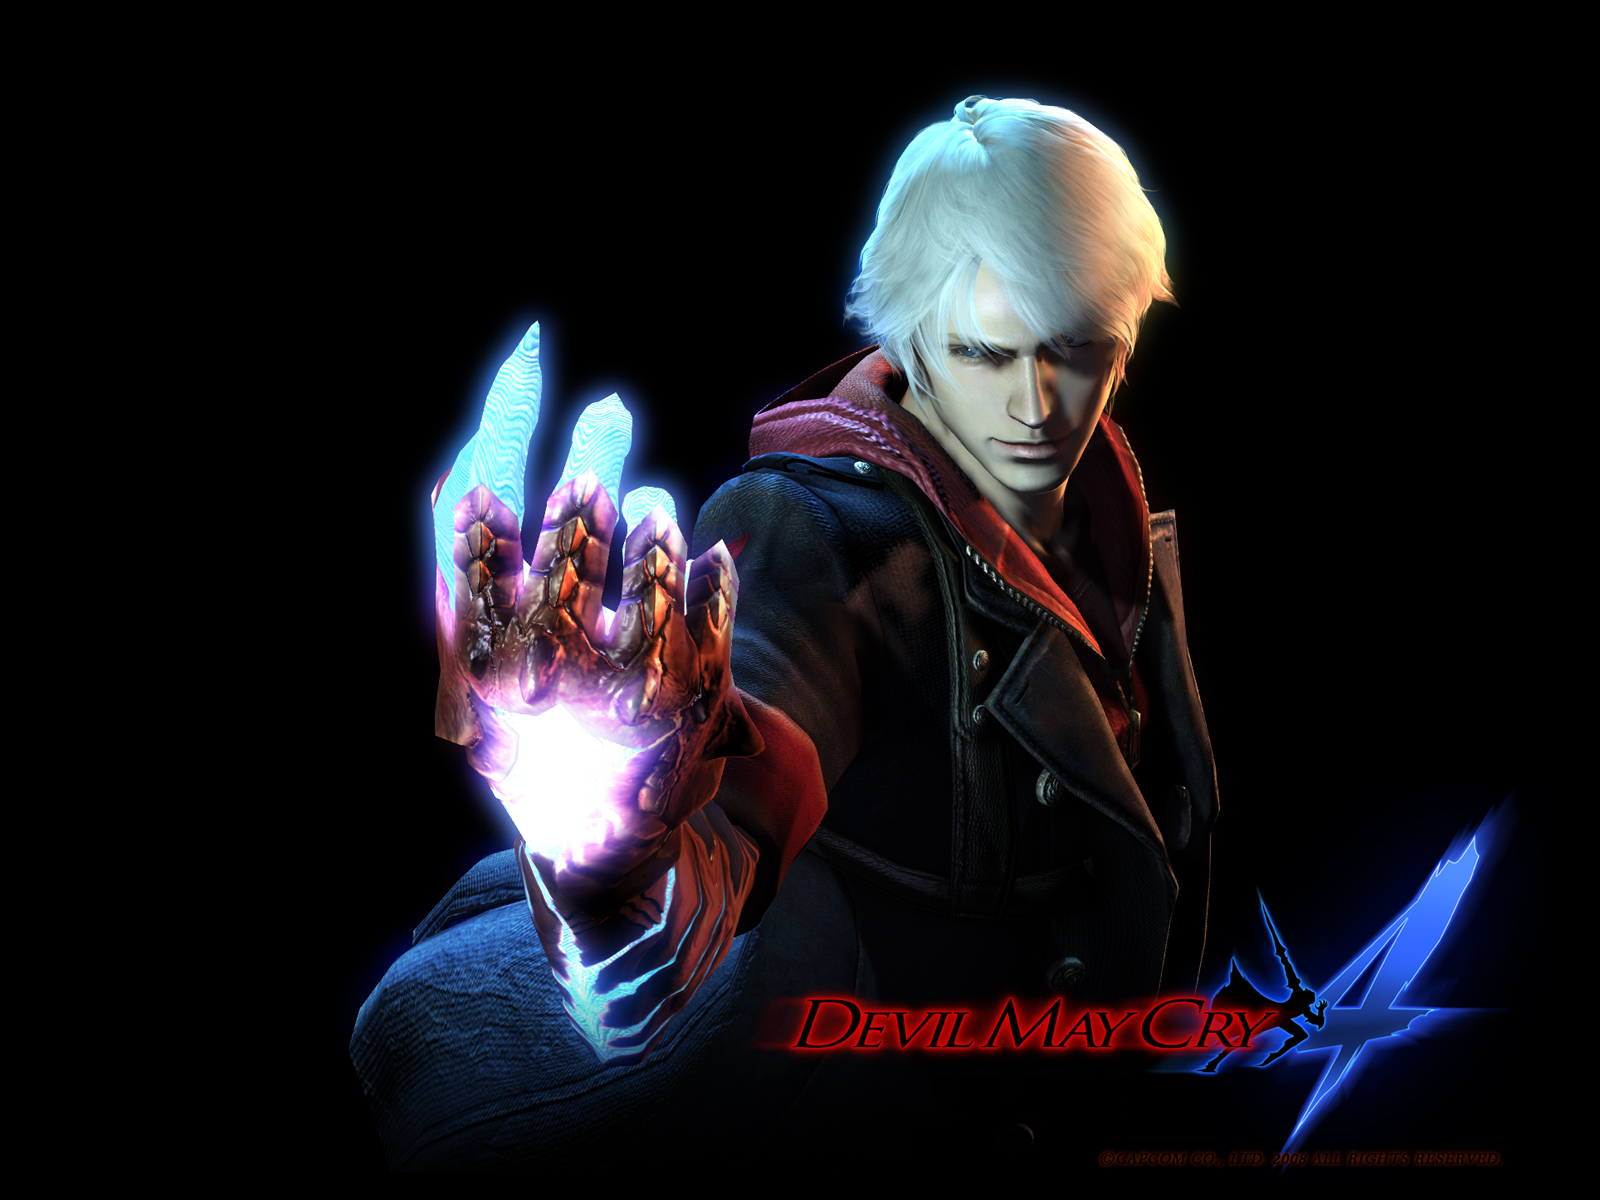 Devil May Cry Fanarts Dmc4wp11full